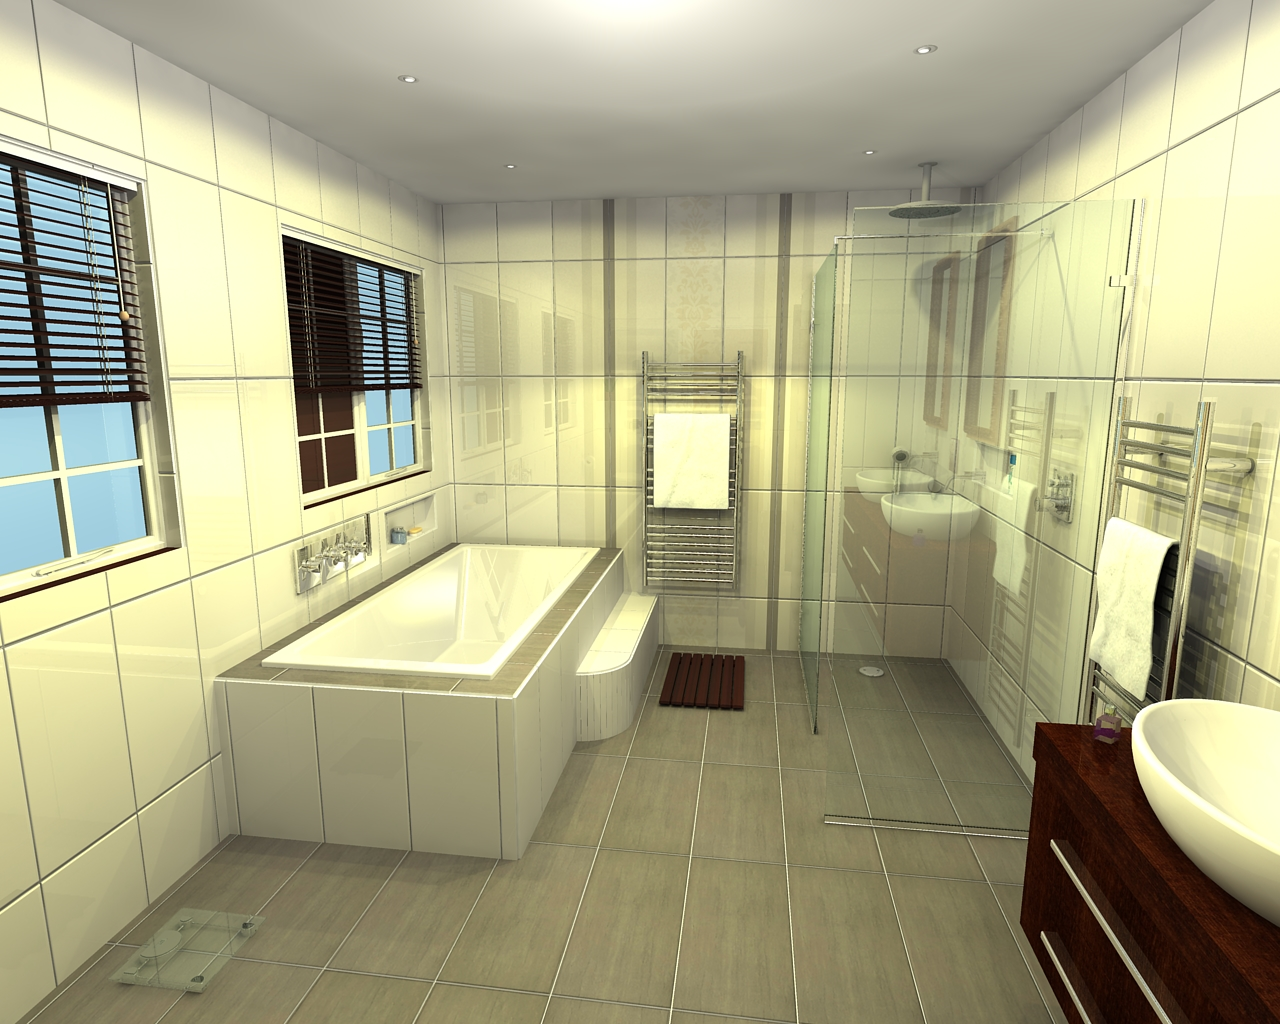 Balinea Bathroom Design Blog: Wet Rooms and Walk-In Showers